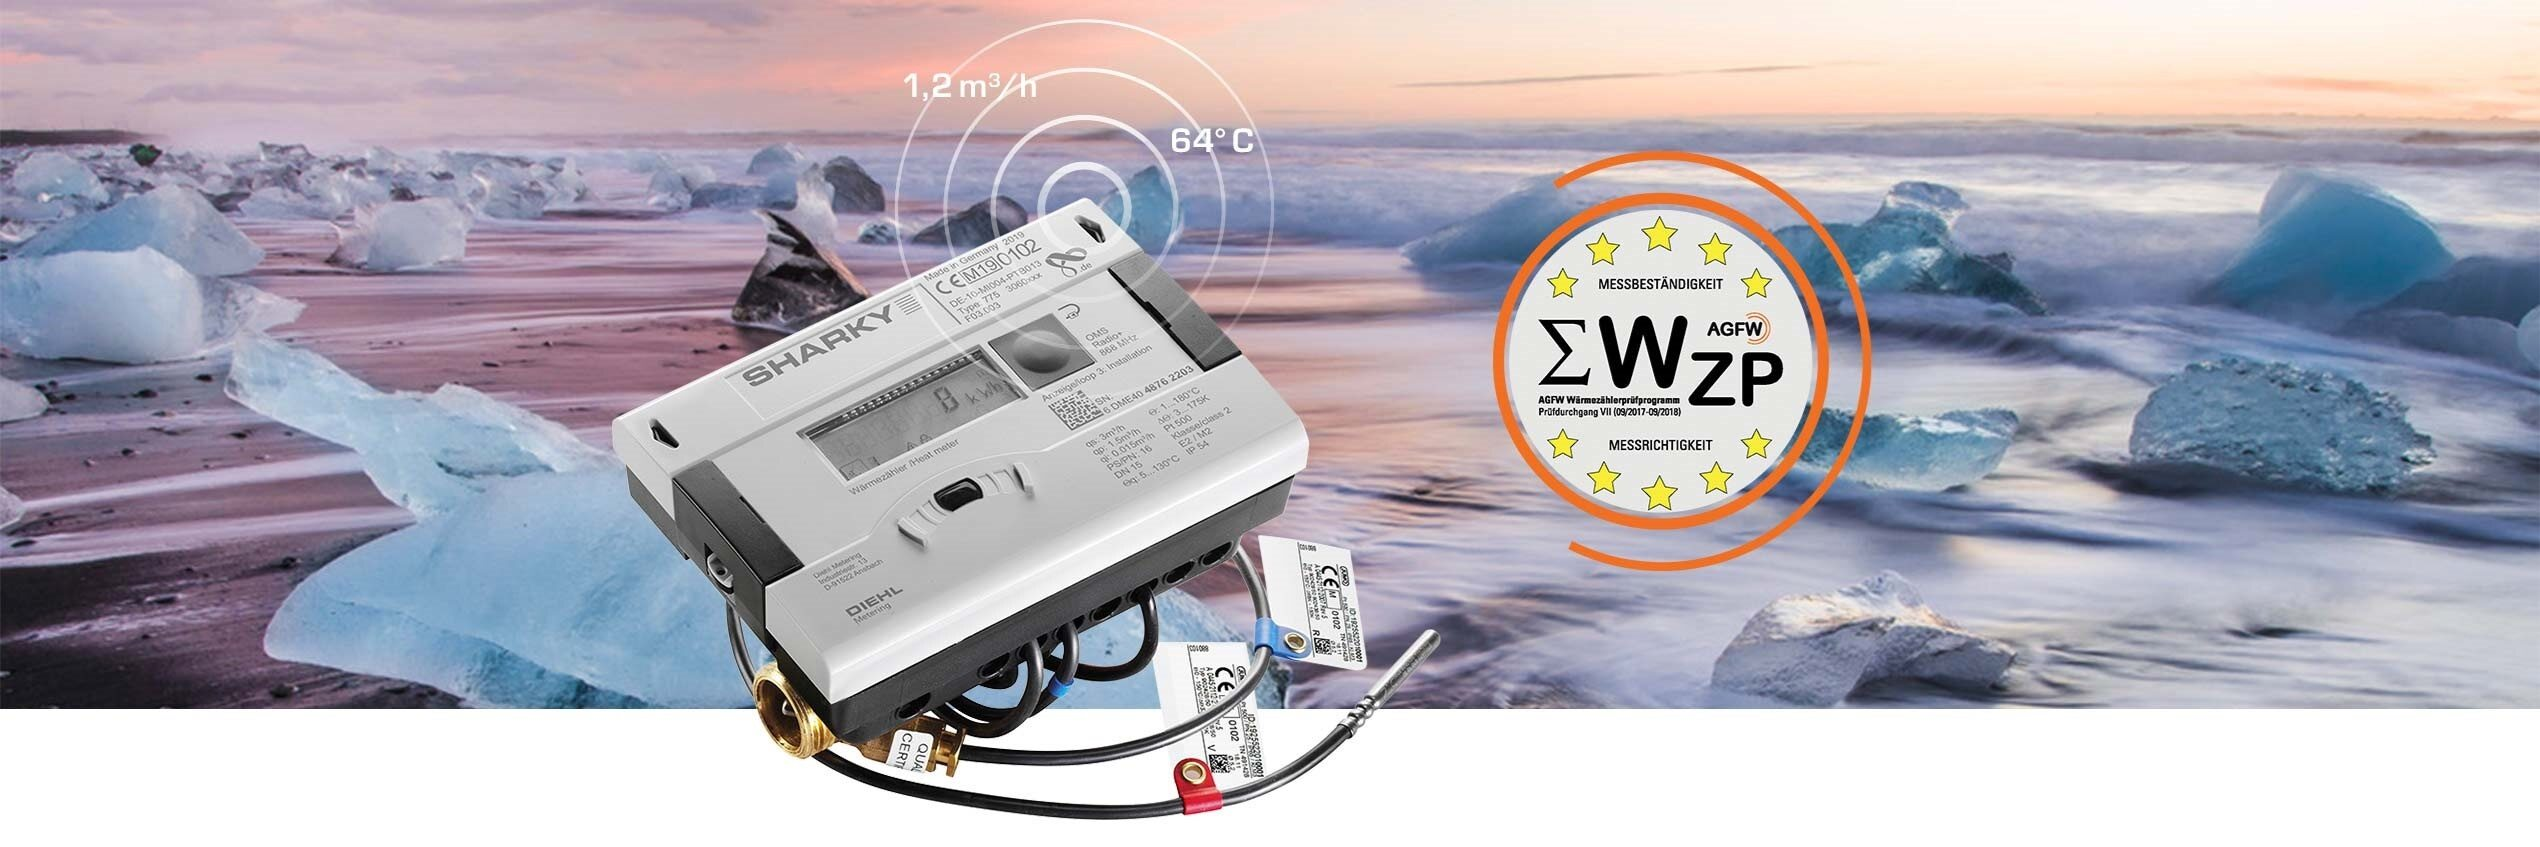 SHARKY: a smart ultrasonic meter founded on 5-star quality